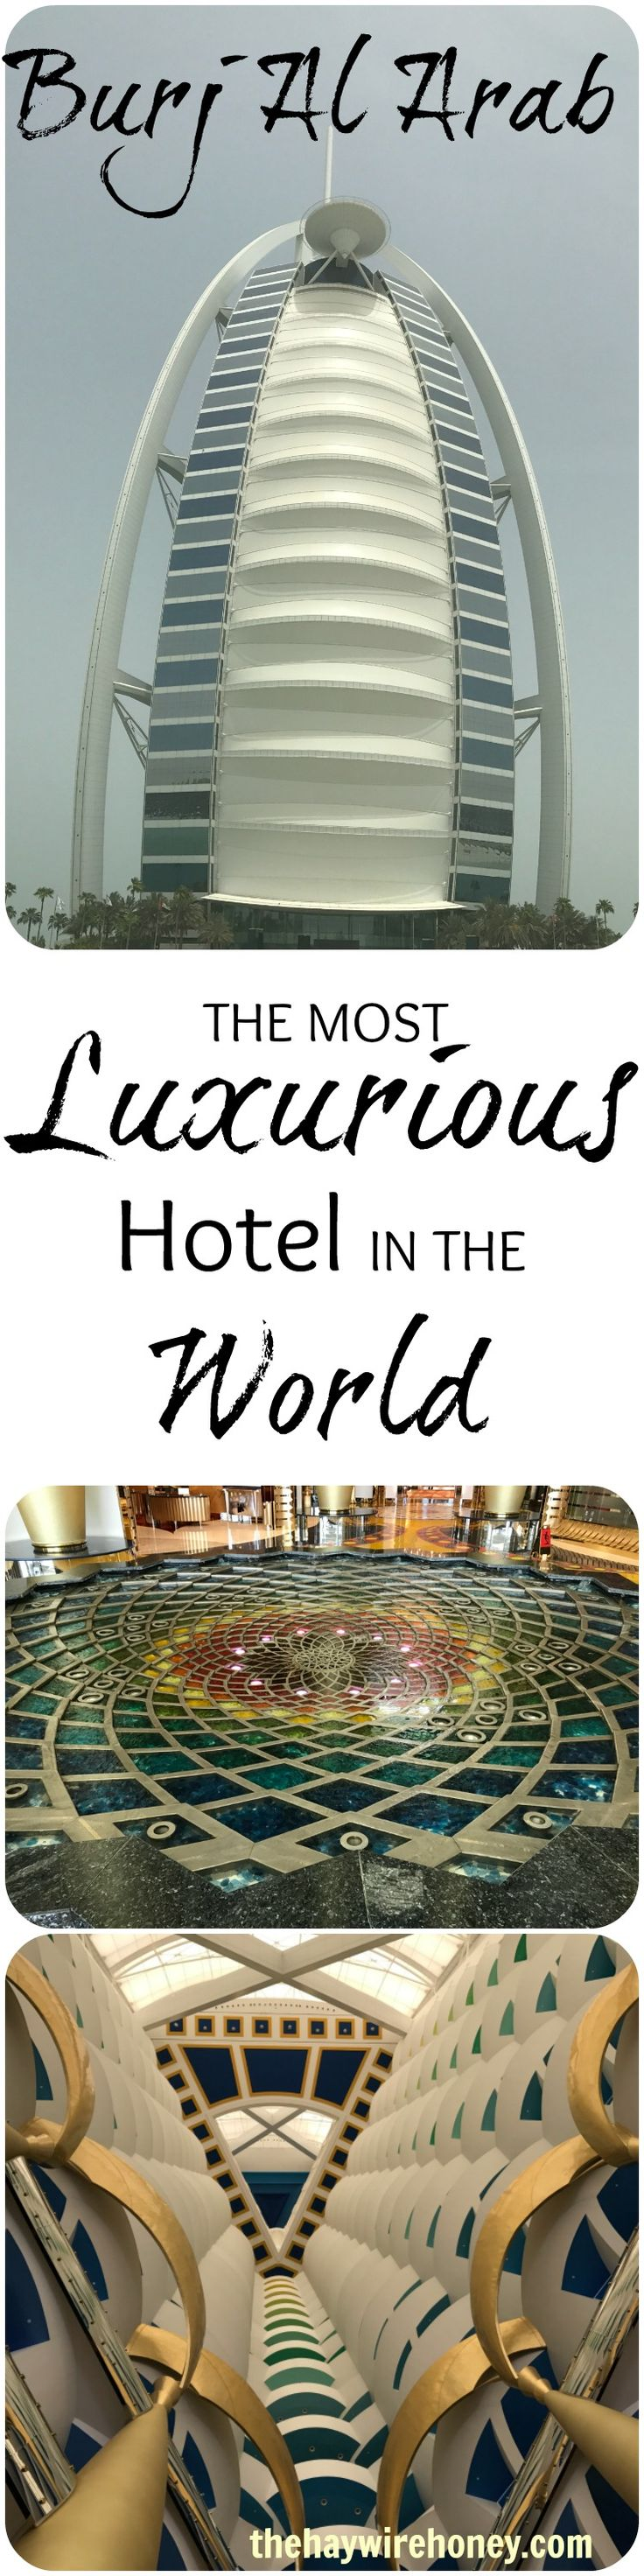 Eat at The Most Luxurious Hotel in The World – The Haywire Honey